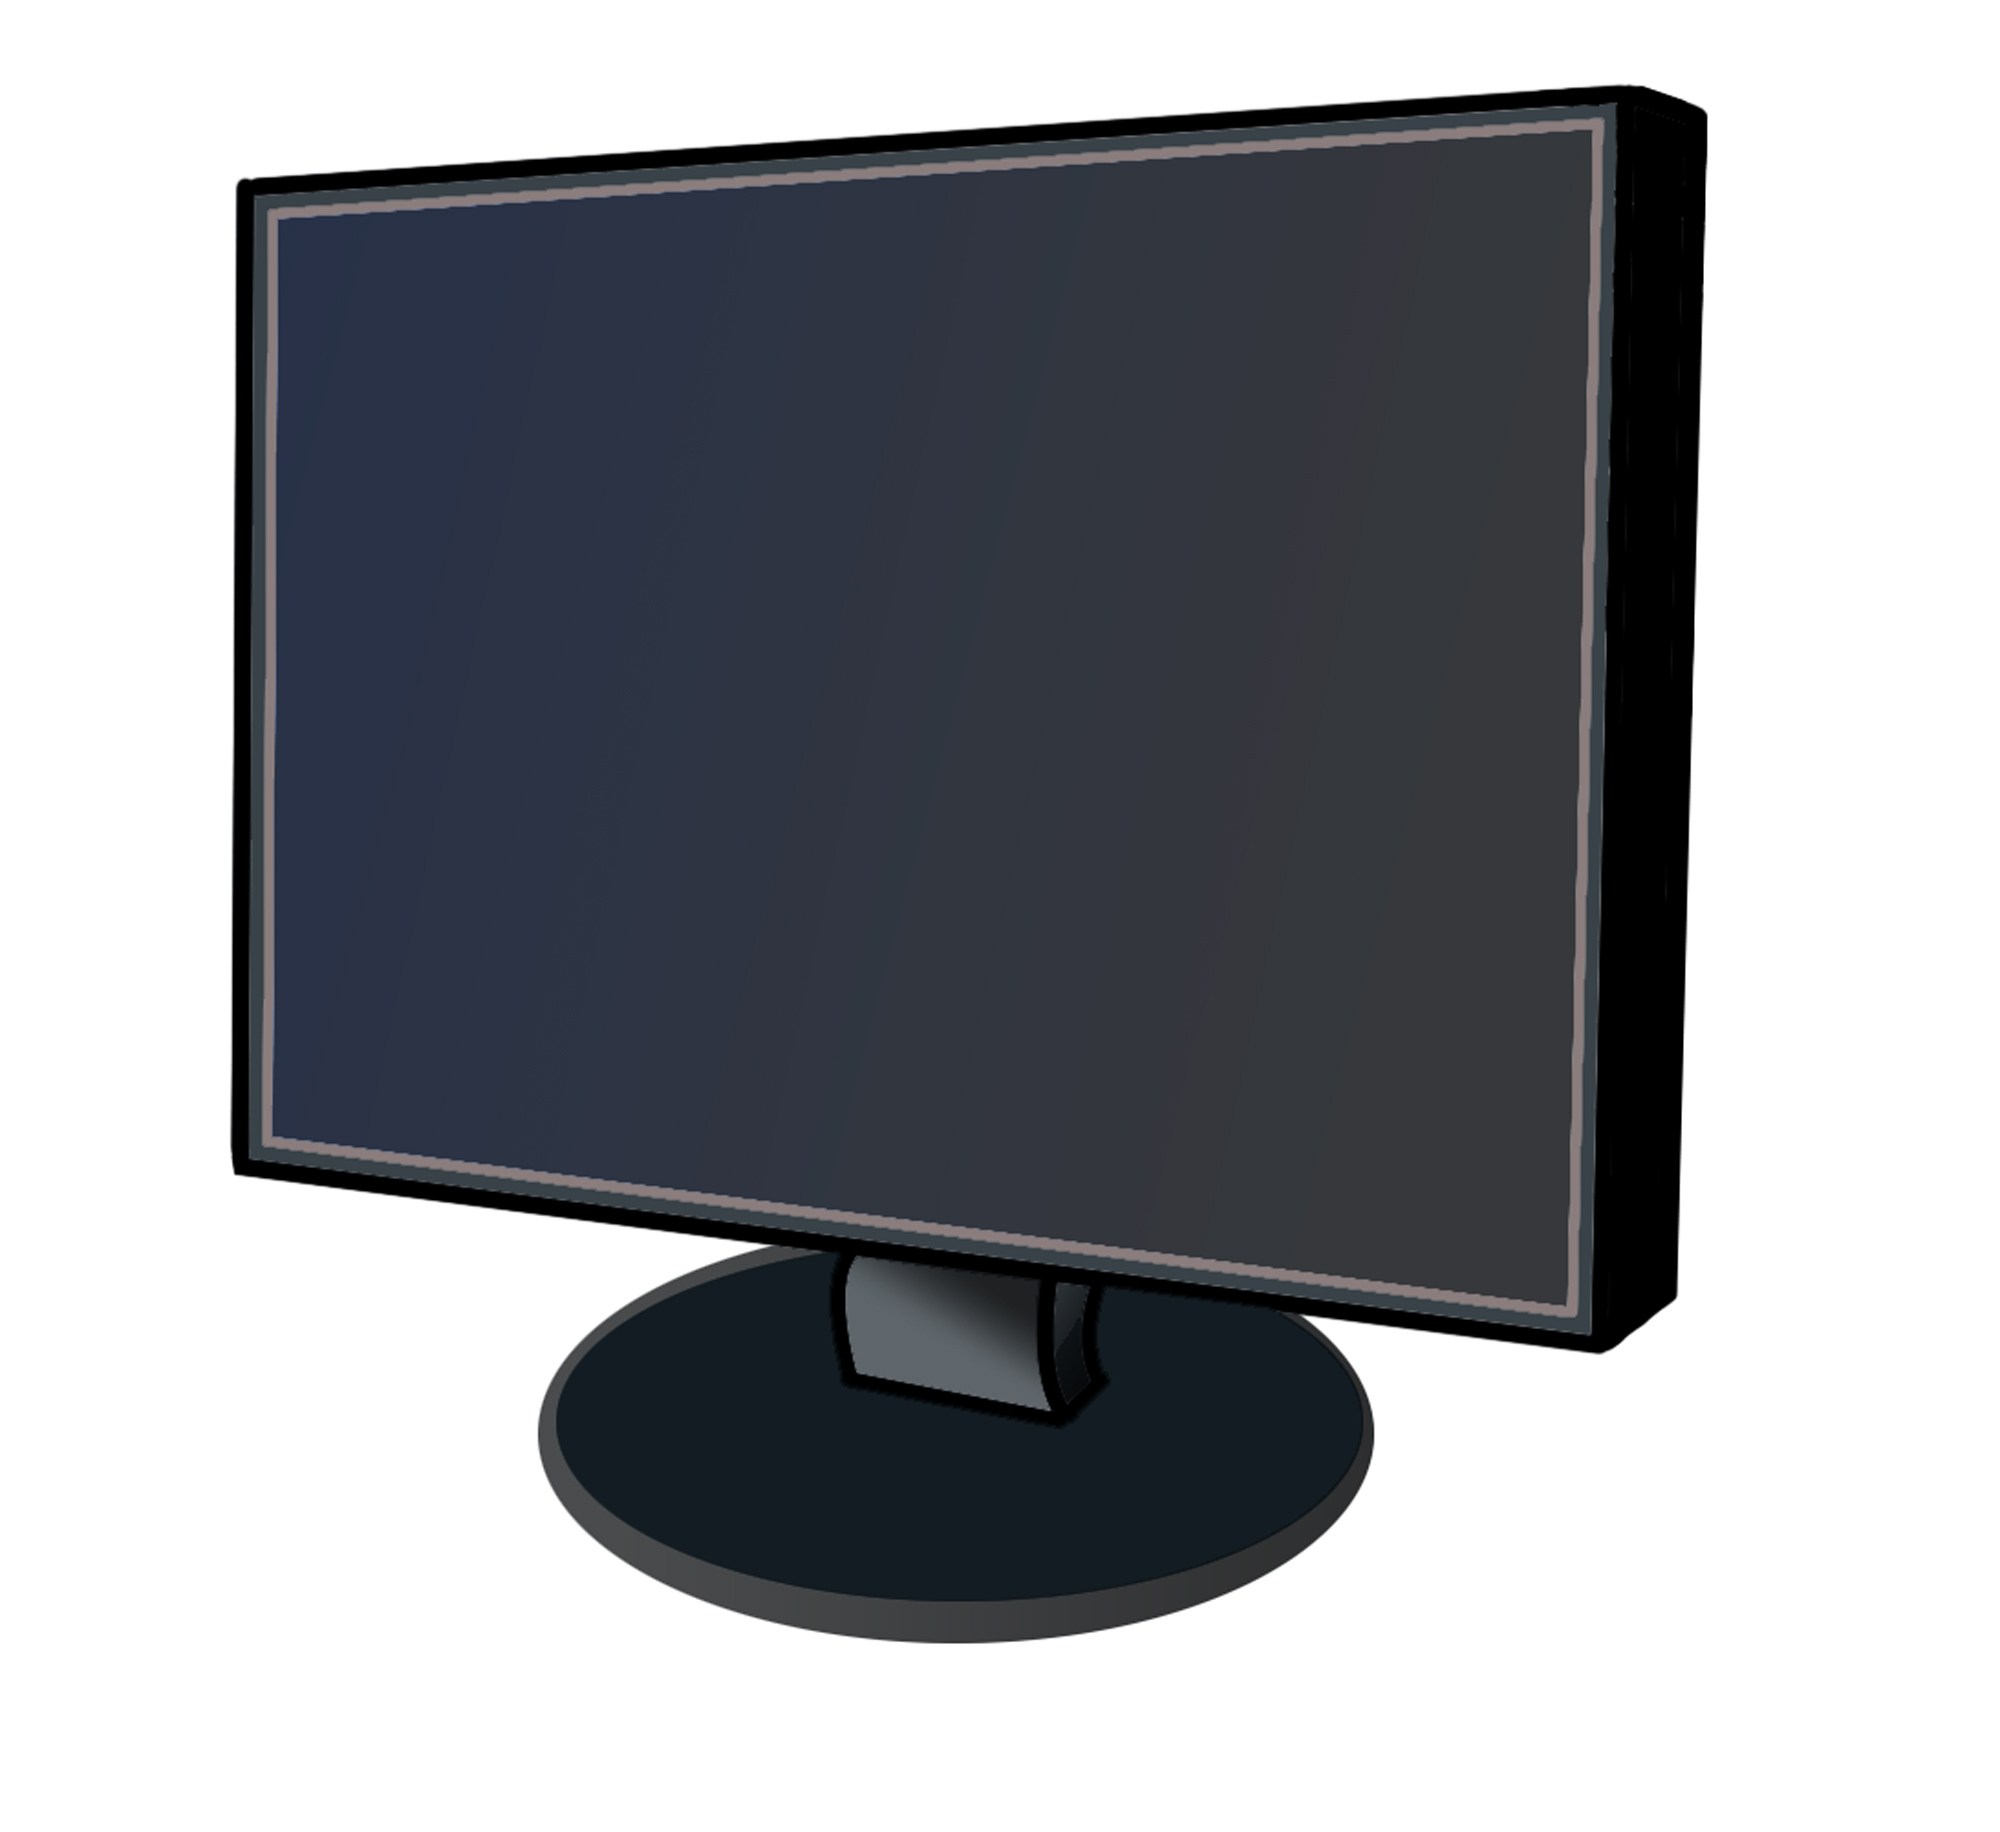 Computer Monitor Screen Clip Art Images Pictures - Becuo